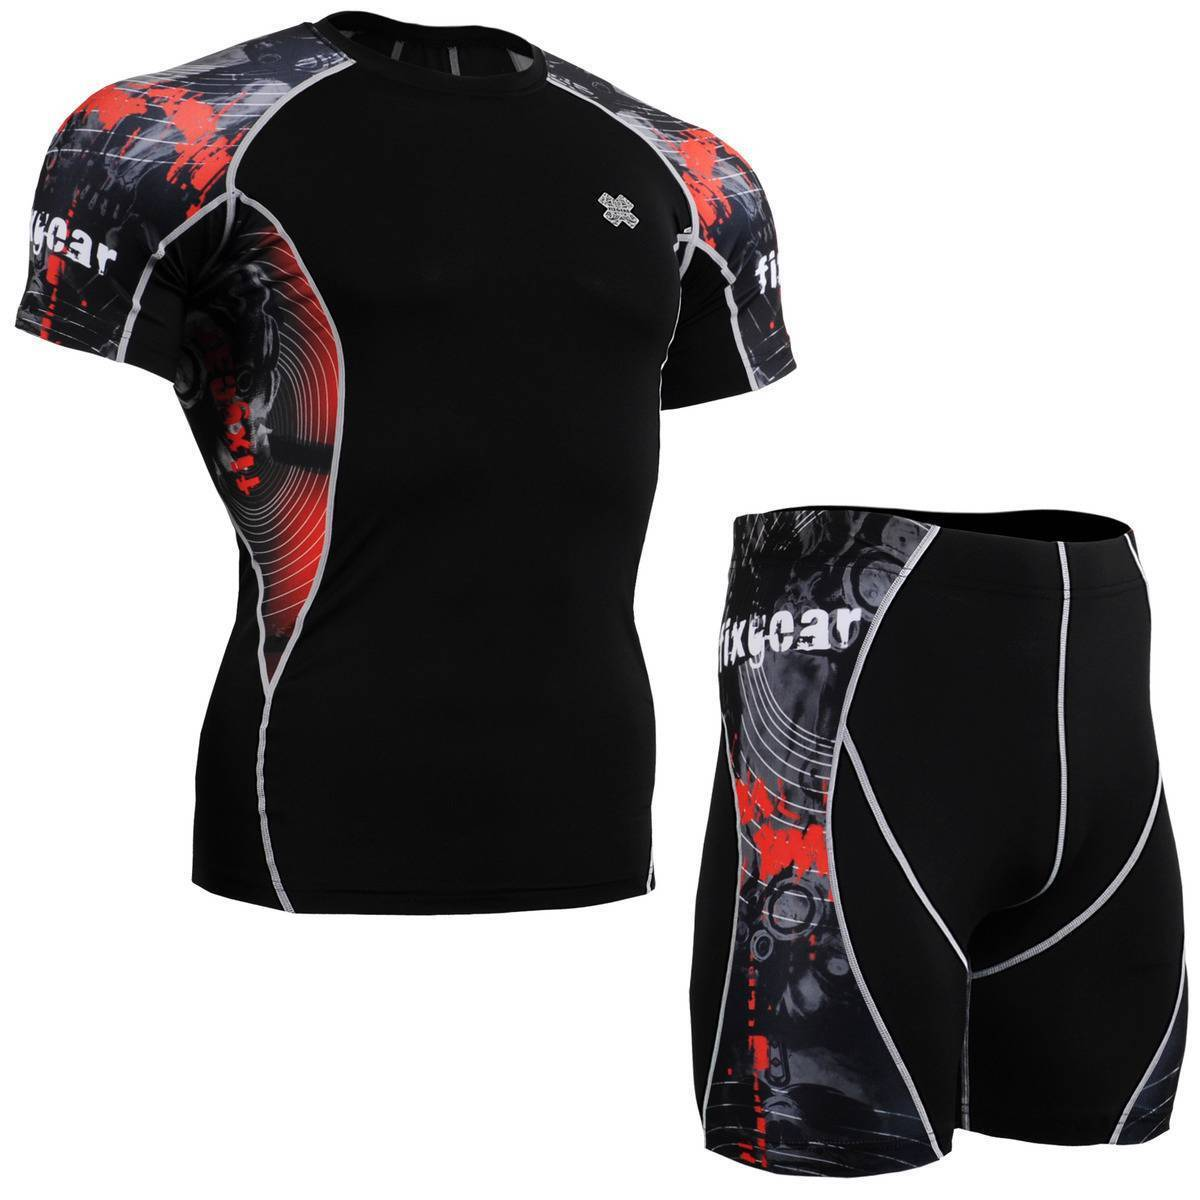 FIXGEAR C2S/P2S-B30 SET Compression Shirts & Shorts Skin-tight MMA Training Gym